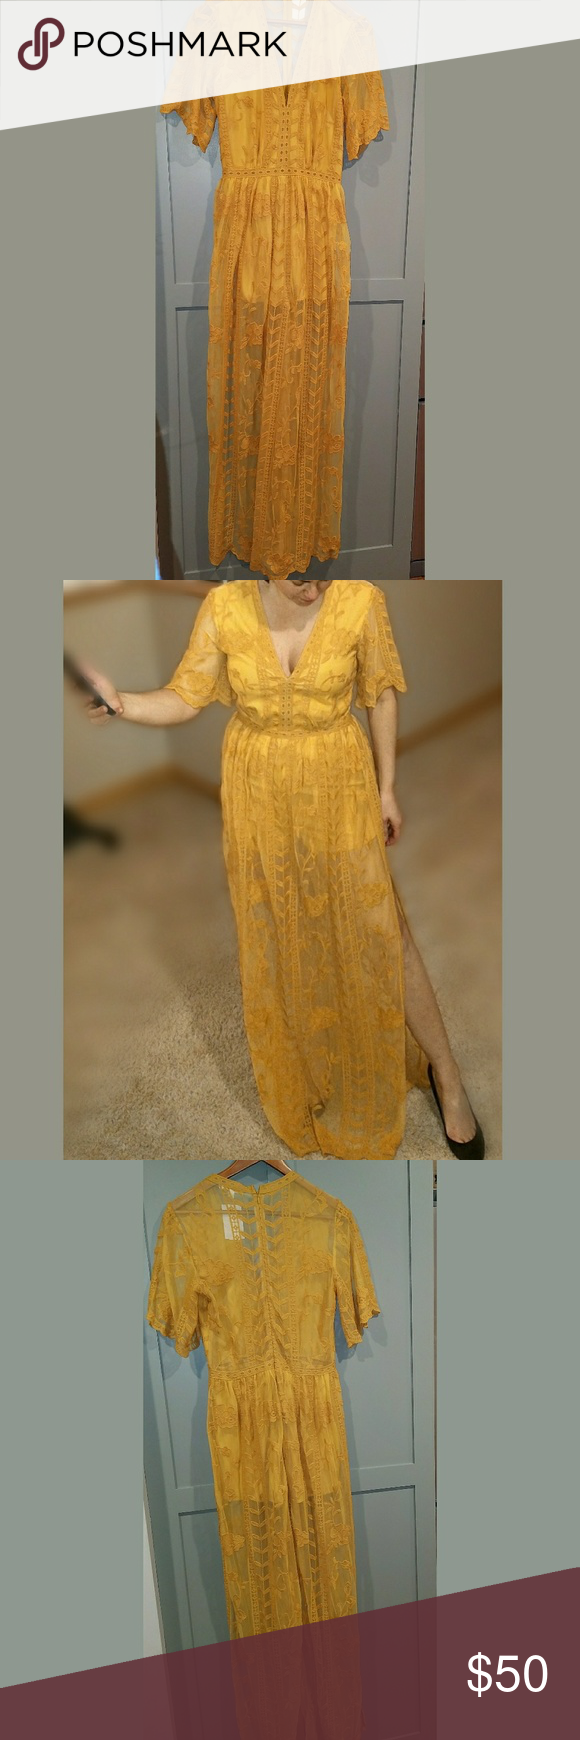 Socialite mustard embroidered dress